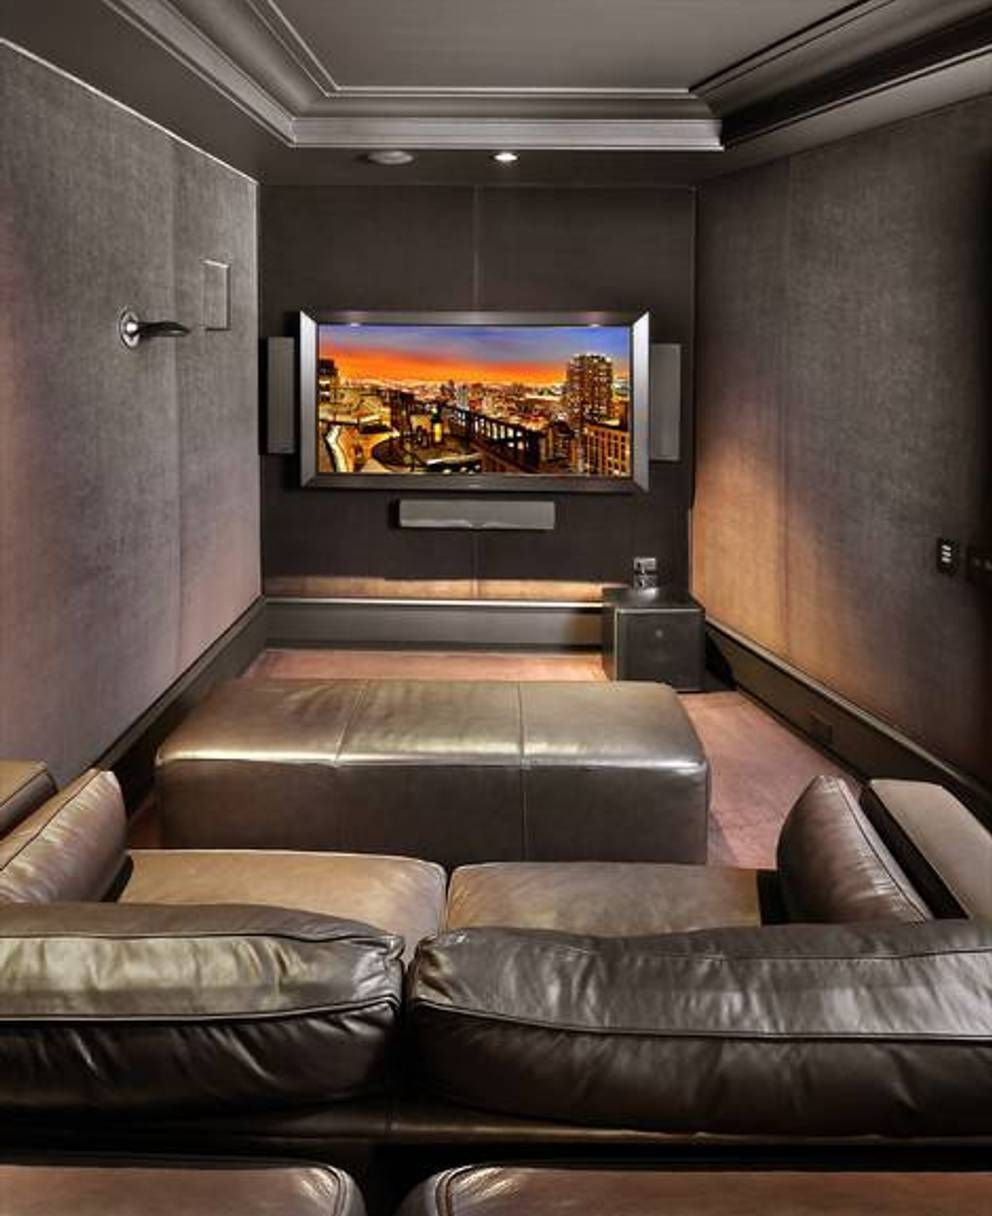 Home Entertainment Design Ideas: Home Design And Decor , Small Home Theater Room Ideas